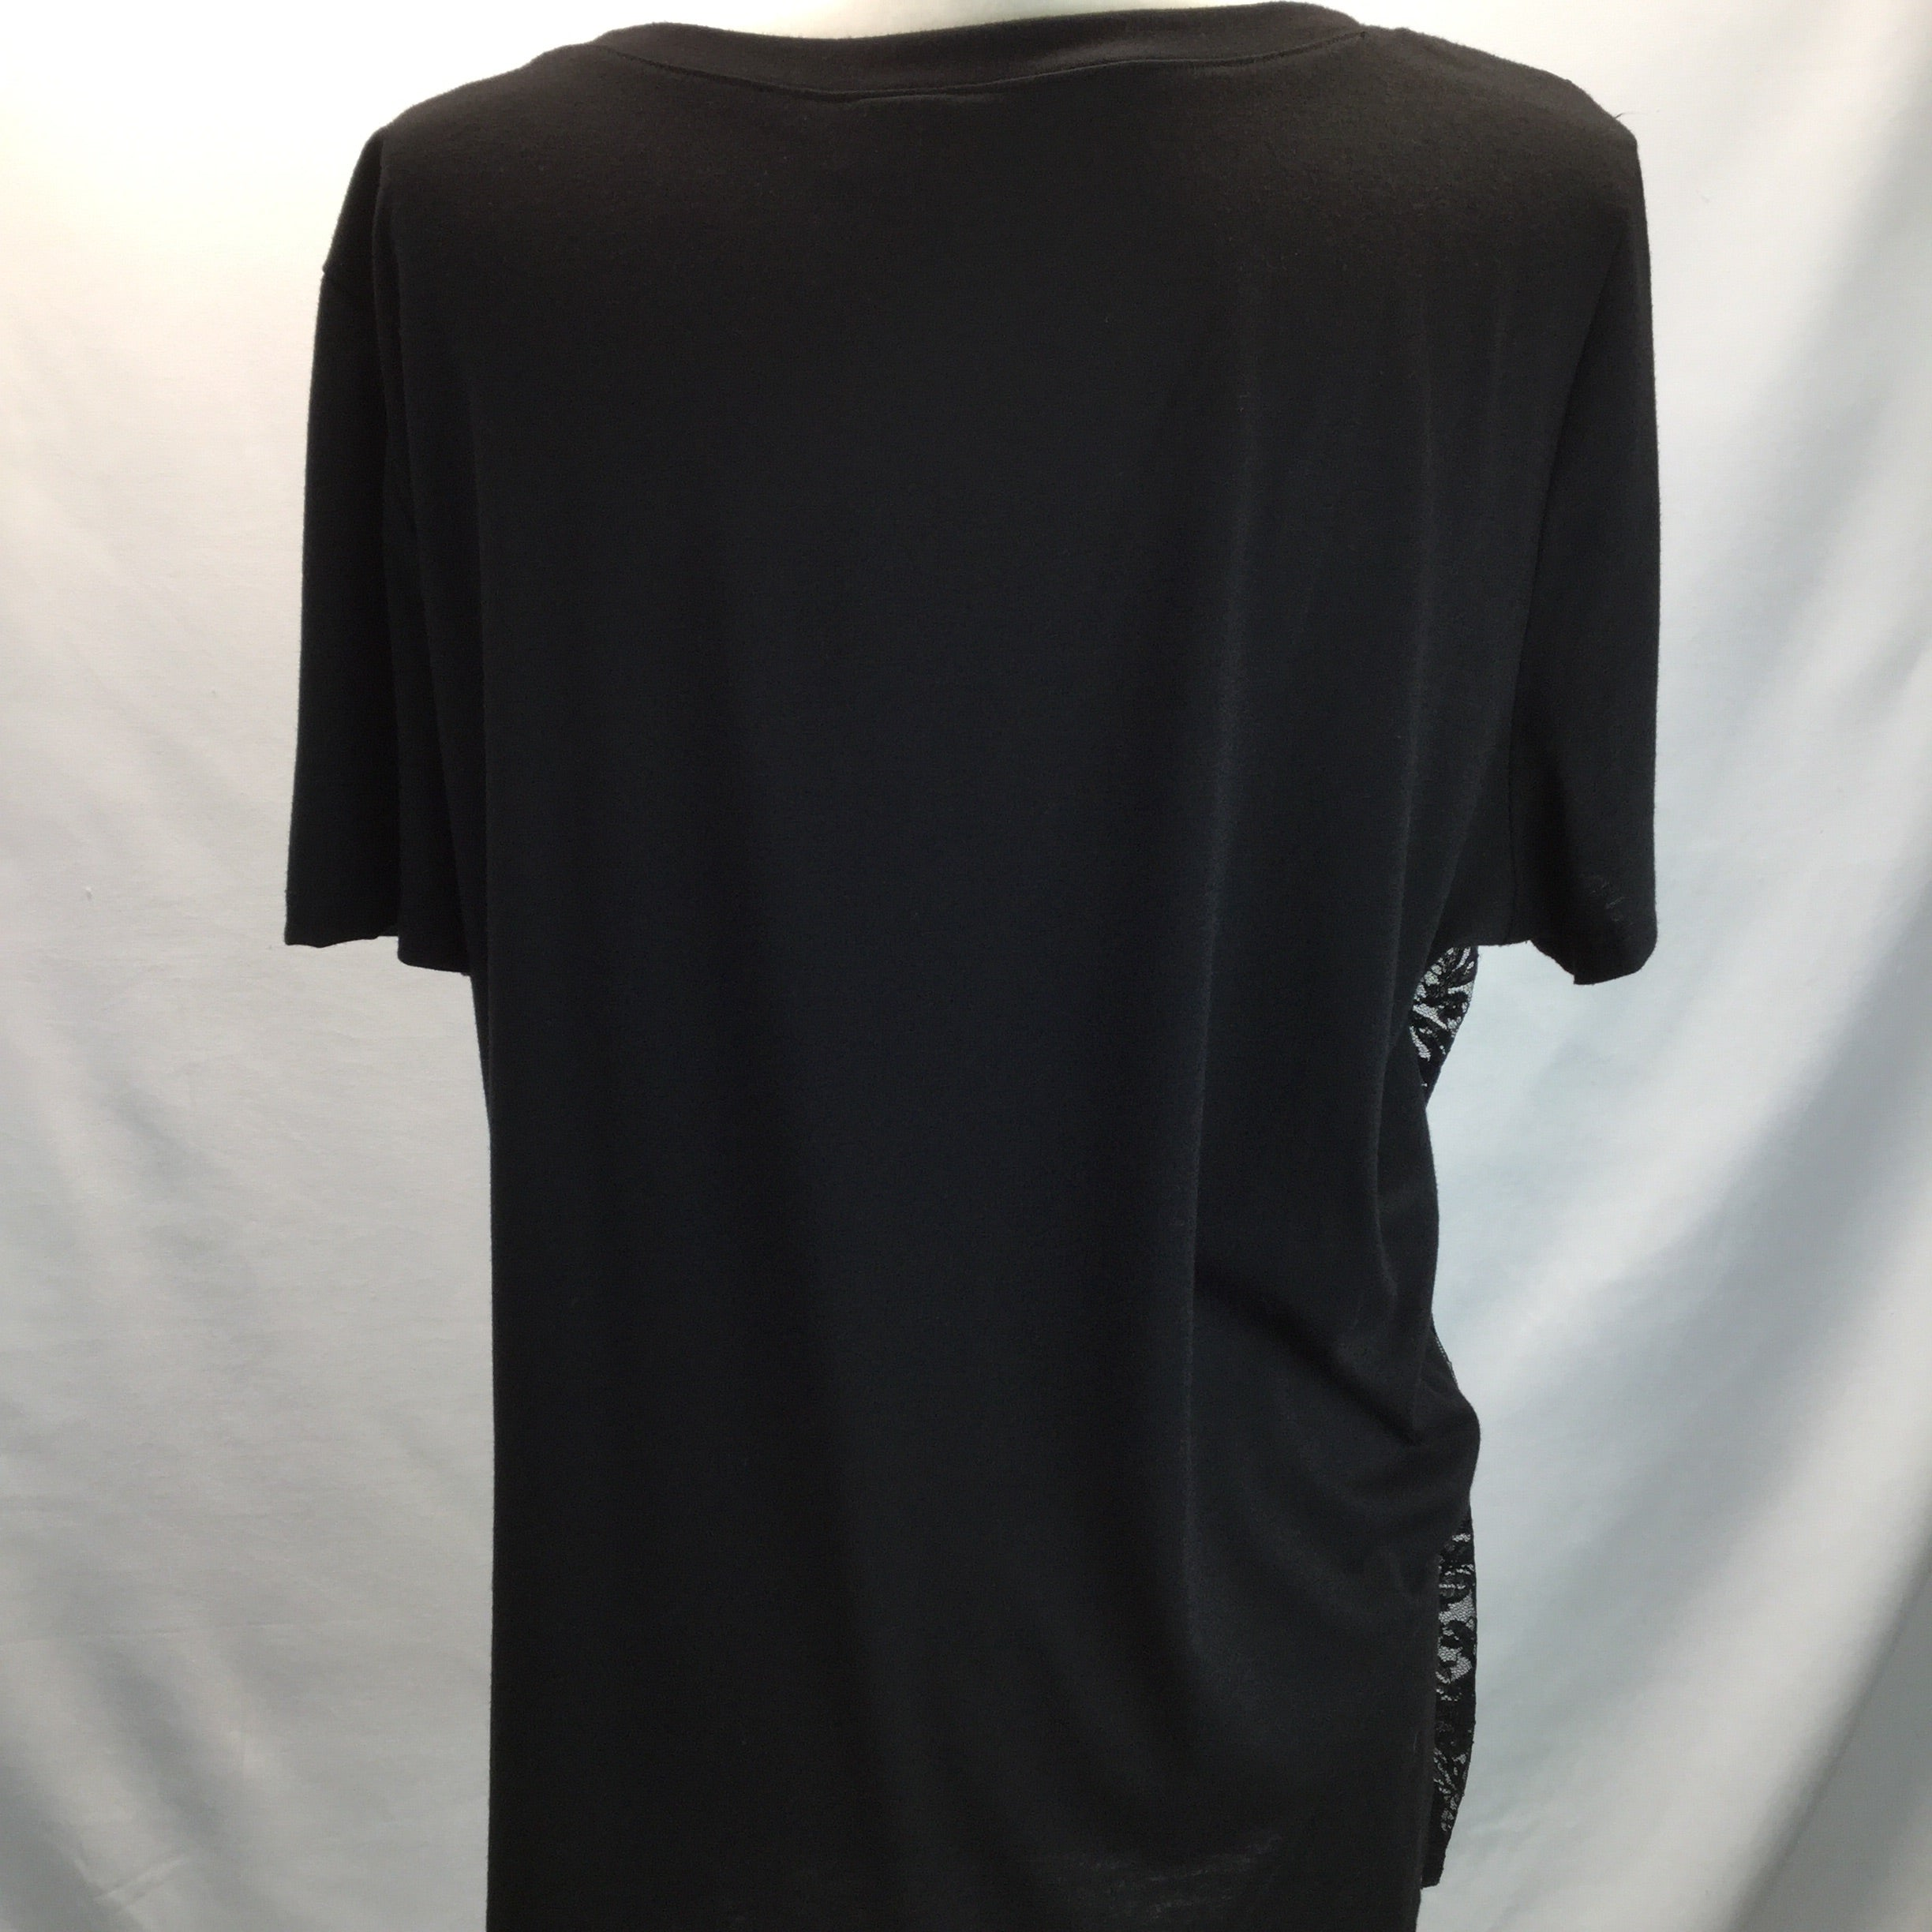 TORRID Black Graphic T-shirt w/ Lace Overlay Size 2X